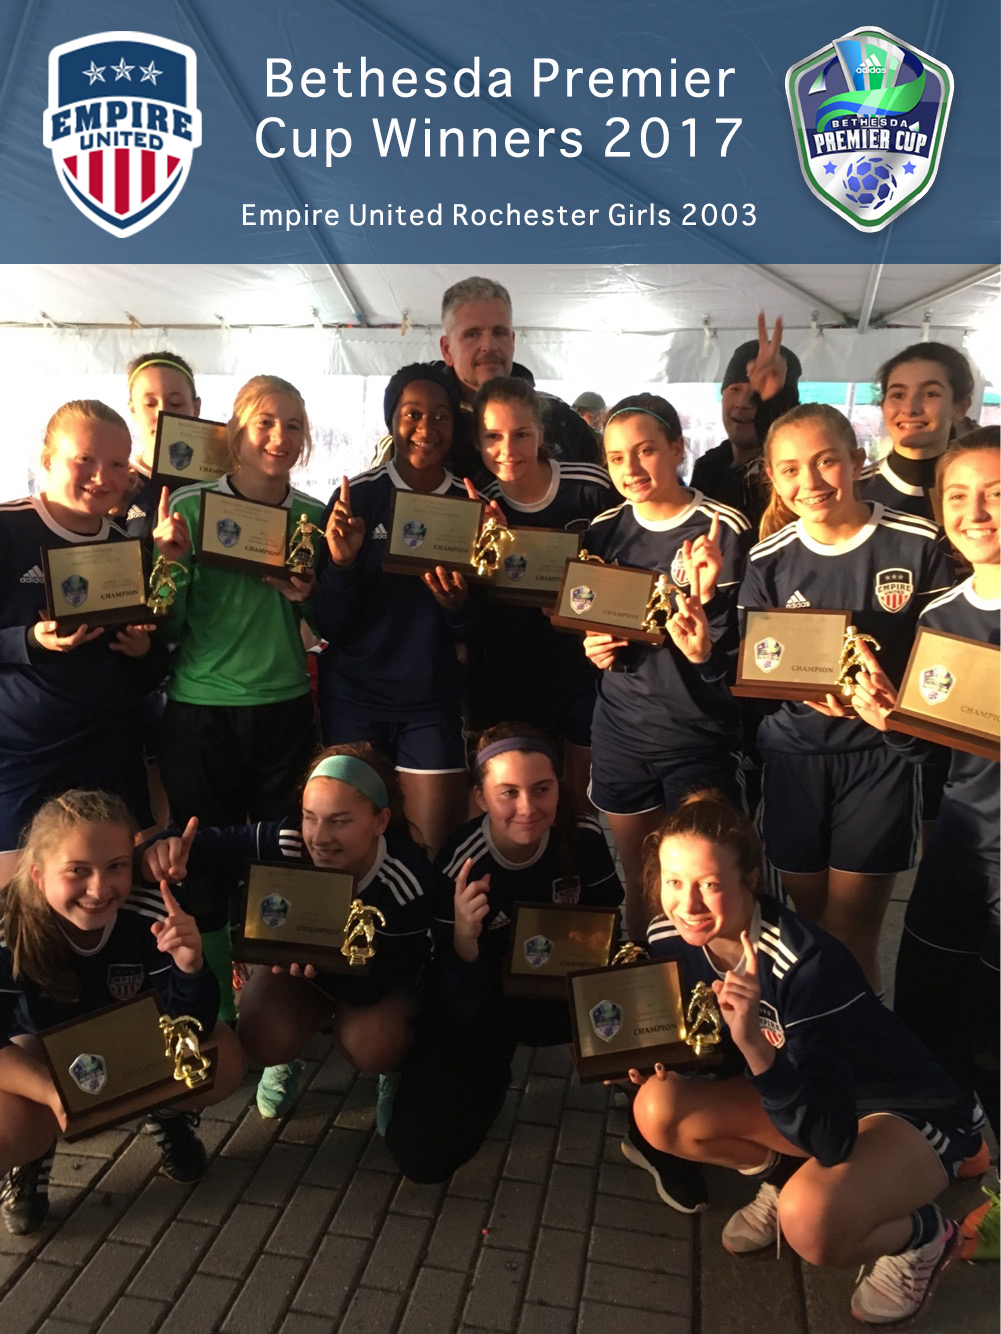 Empire United Rochester Girls 2003s win Bethesda Premier Cup National Bracket!